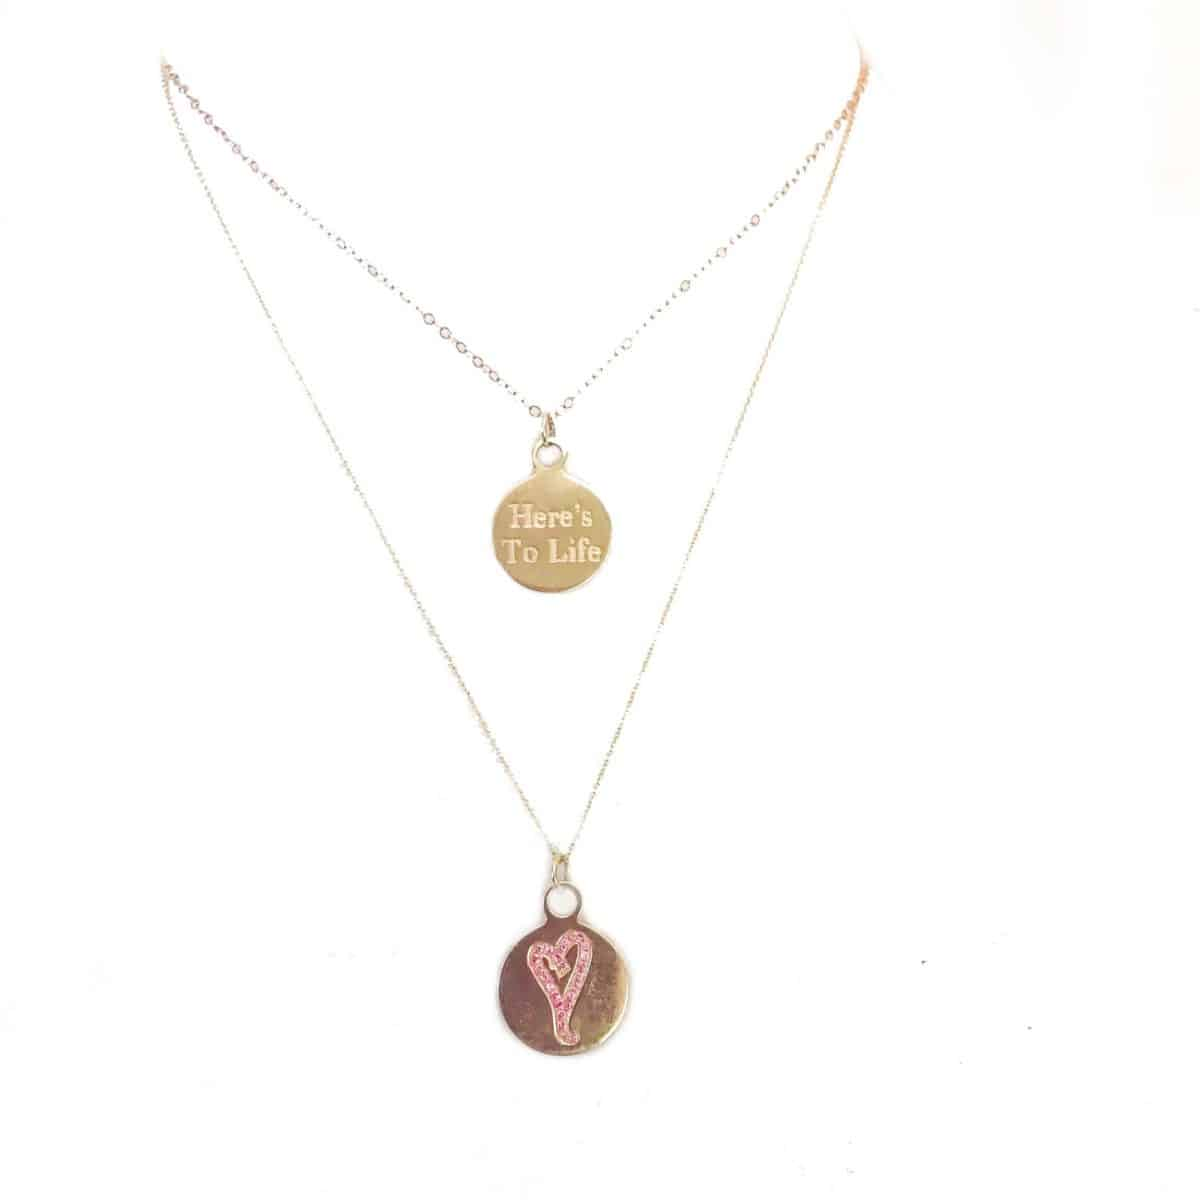 love is precious, pink hearts, celebrate life, 14k gold charm necklace, here's to life heart charm